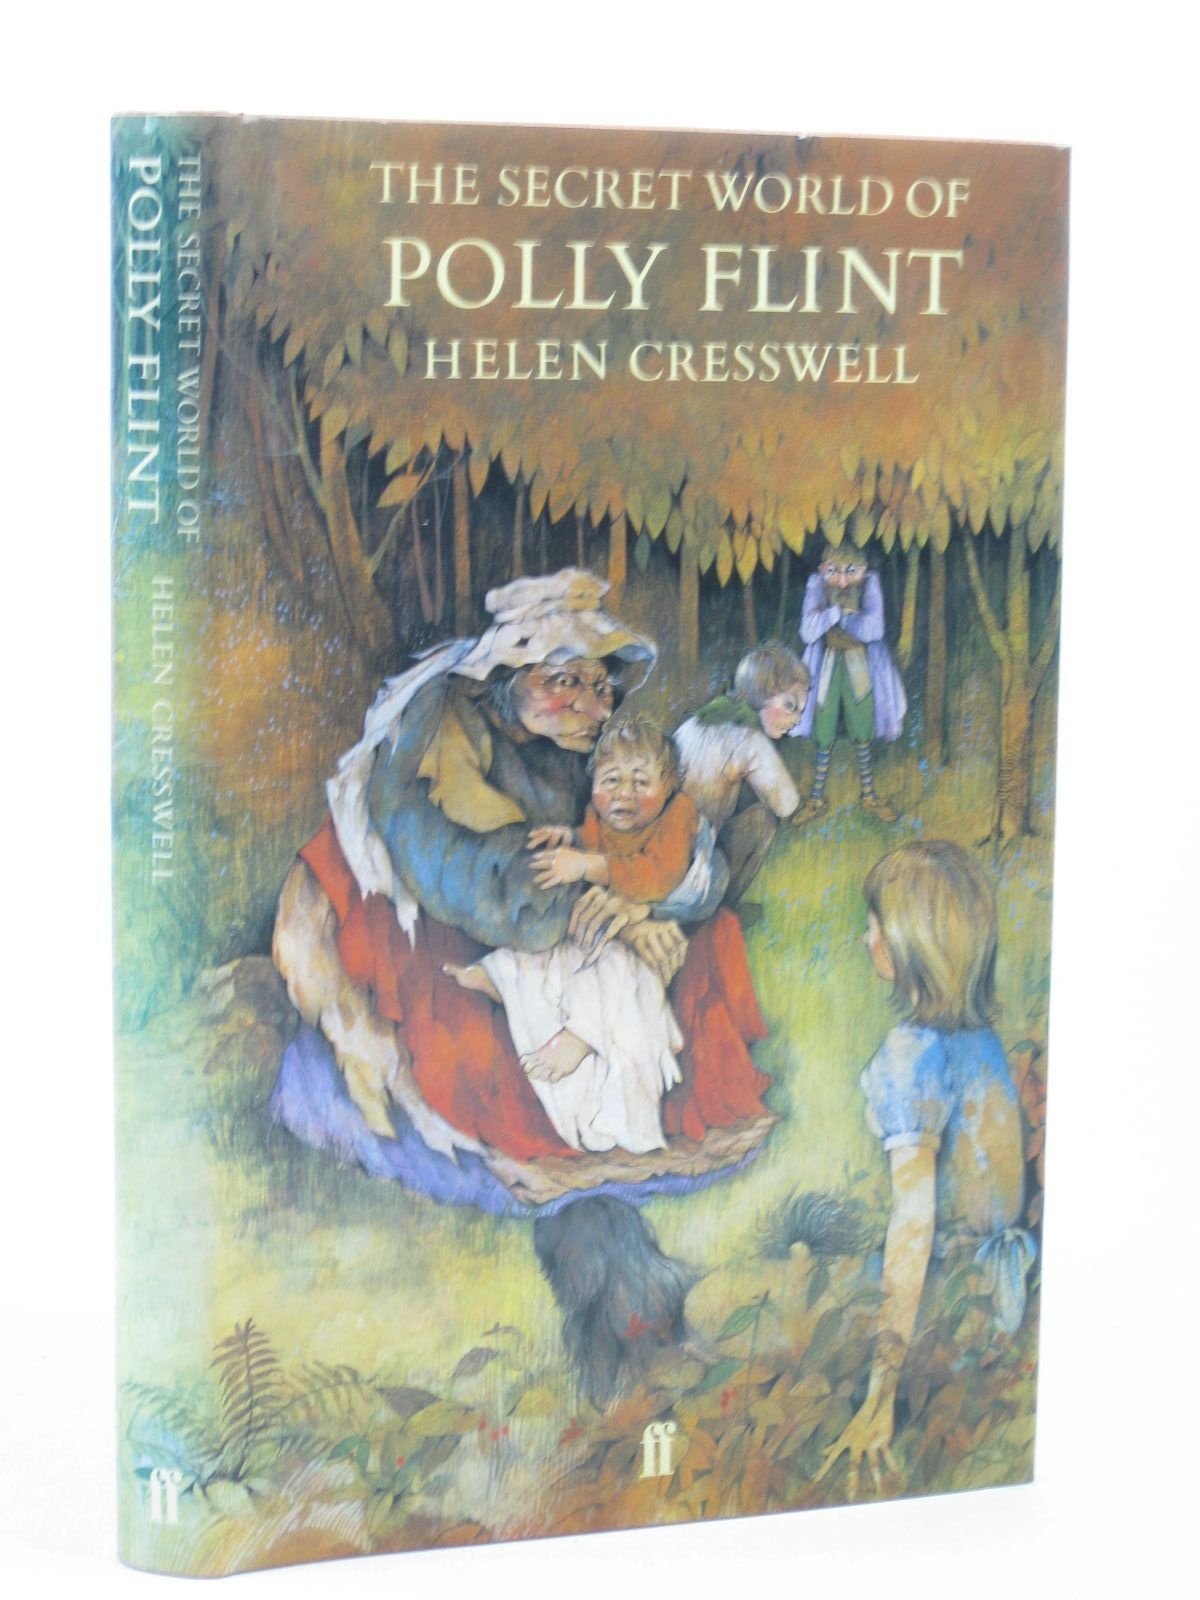 Photo of THE SECRET WORLD OF POLLY FLINT written by Cresswell, Helen illustrated by Felts, Shirley published by Faber & Faber (STOCK CODE: 1312626)  for sale by Stella & Rose's Books